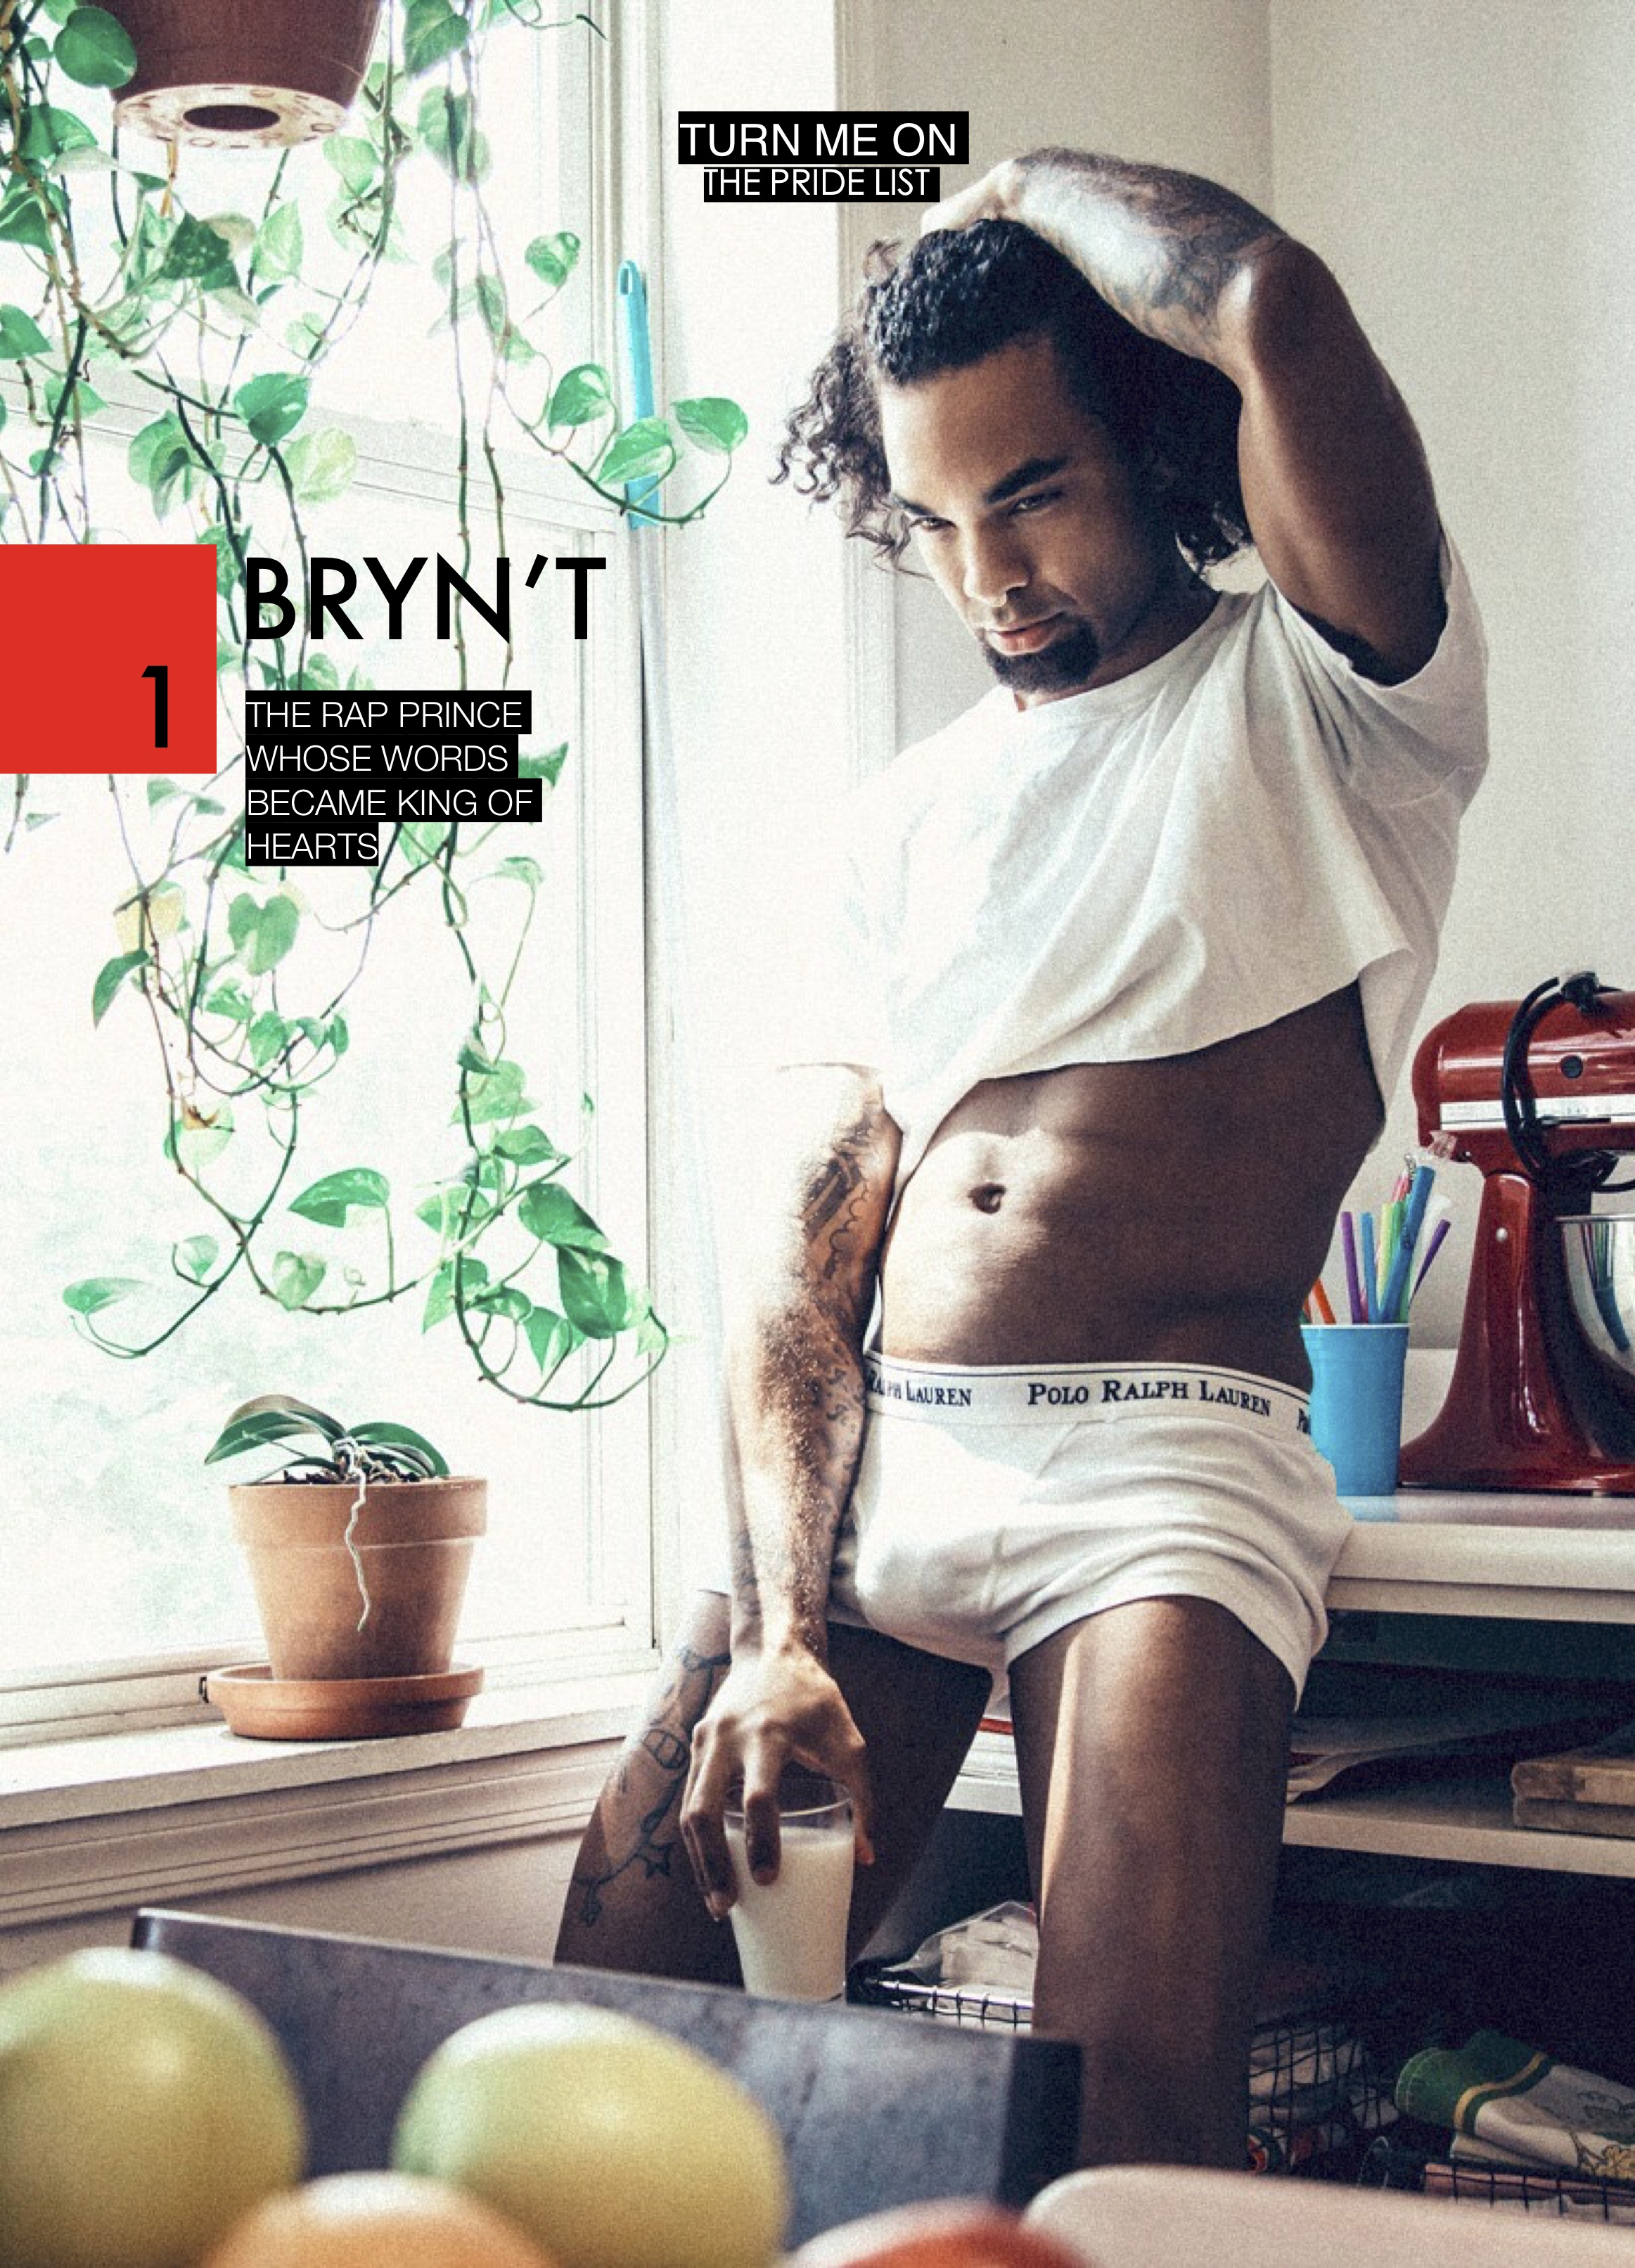 """BRYN'T X DBQ Magazine   Top 3 songs on your playlist this Summer?  Medino Green - """"Good Dick"""" featuring Bry'Nt  Beyoncé & Jay-Z - """"APESH*T""""  Tory Lanez - """"Leaning"""" featuring PartyNextDoor    Personal favorite pride to attend?  It's a tie between D.C. and Detroit Pride, which have been the most turnt up Prides that I've attended. A close runner-up is New York Pride because it was my first one. Honorable Mention goes to Dominican Republic's Inferno.   What's your favorite thing to do on the beach?  Layout with a cold one  Swimming pool or ocean?  Pool  Poetry or a novel?  Novel  Cocktail or a joint?  Cocktail  One thing you want to achieve by the end of the Summer?  I want to release my album """"Bry'Nt Park"""" along with more visuals.   What makes you smile?  Amusement parks, puppies, and sunny days.   Lay on the beach or lay by the pool?  beach  What is something that people should know about your work?  It's the product of blood, sweat, and tears.  When was the best sex of your life this far?  6969-06-09  Who do you want to be the next president?  Anyone that is truly invested in the betterment of humanity. Is Barack Obama an option or nah?  What makes you proud?  I'm proud of the man I am today."""